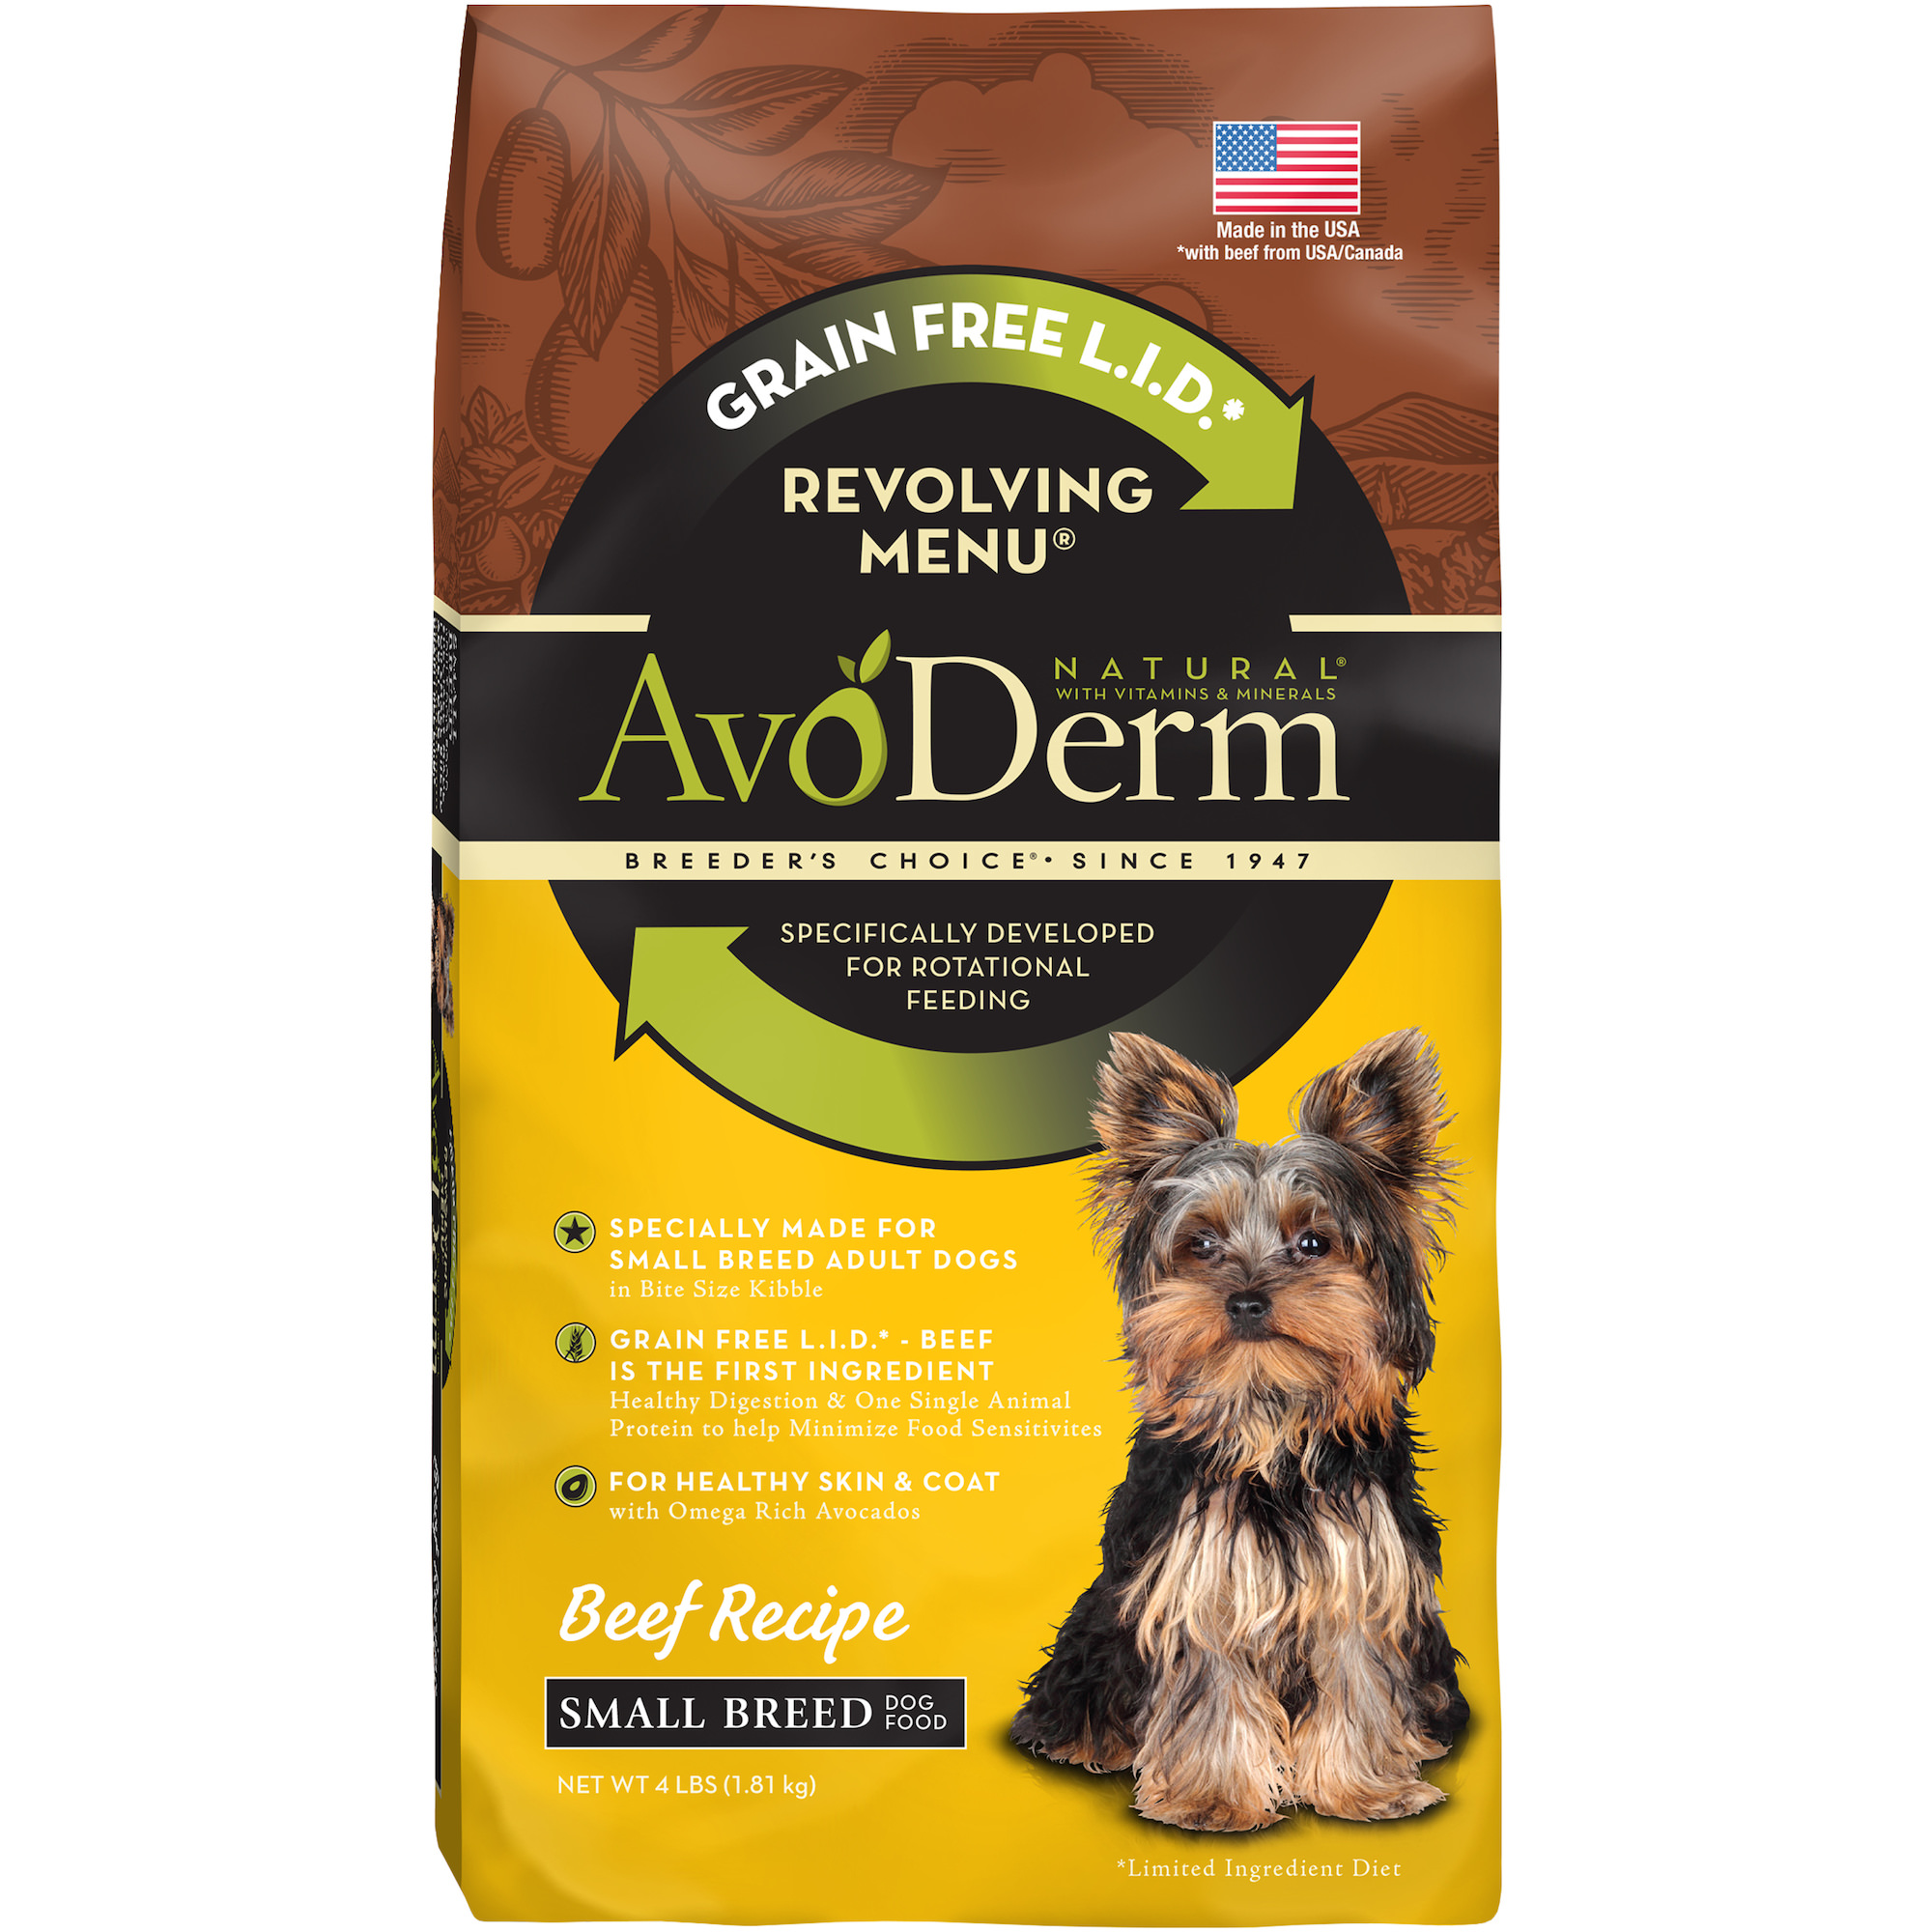 AvoDerm Natural Revolving Beef Recipe Menu for Small Breed Adult Dog Food, 4 lb.